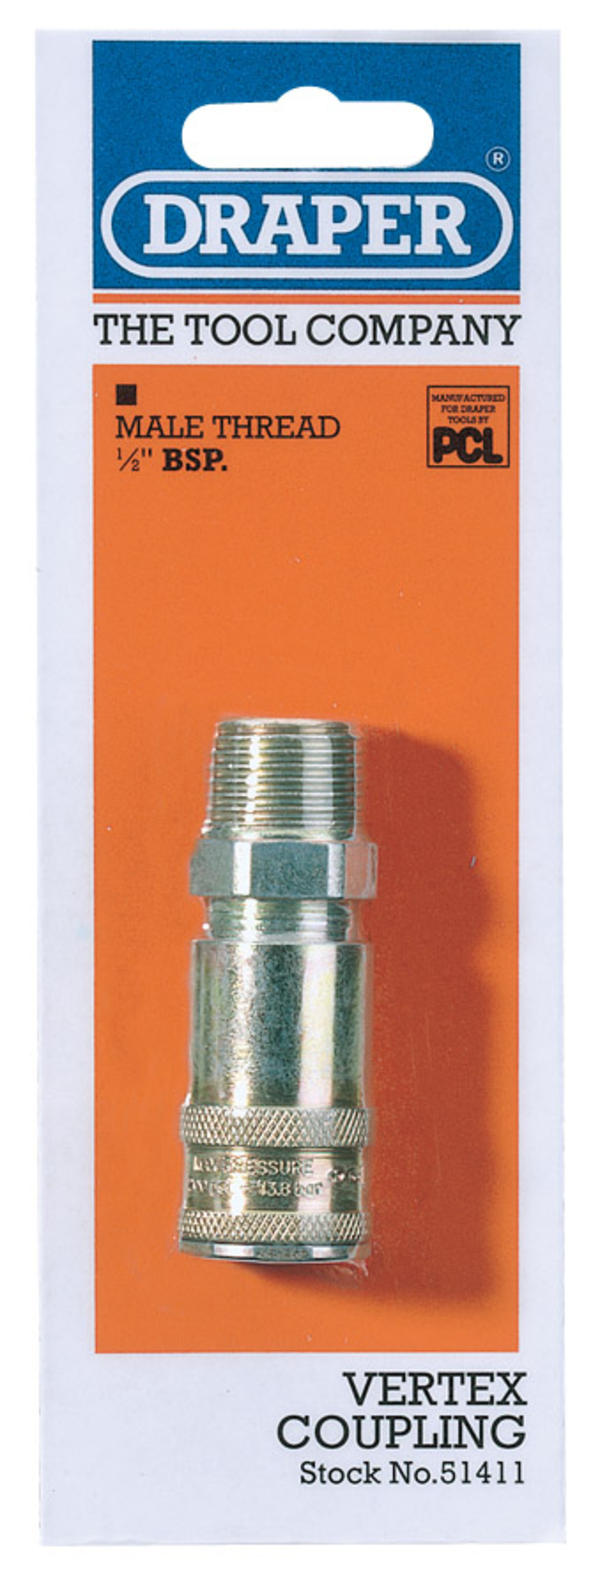 Draper 51411 A91JM02 1/2 BSP Taper Male Thread Vertex Air Coupling Thumbnail 1